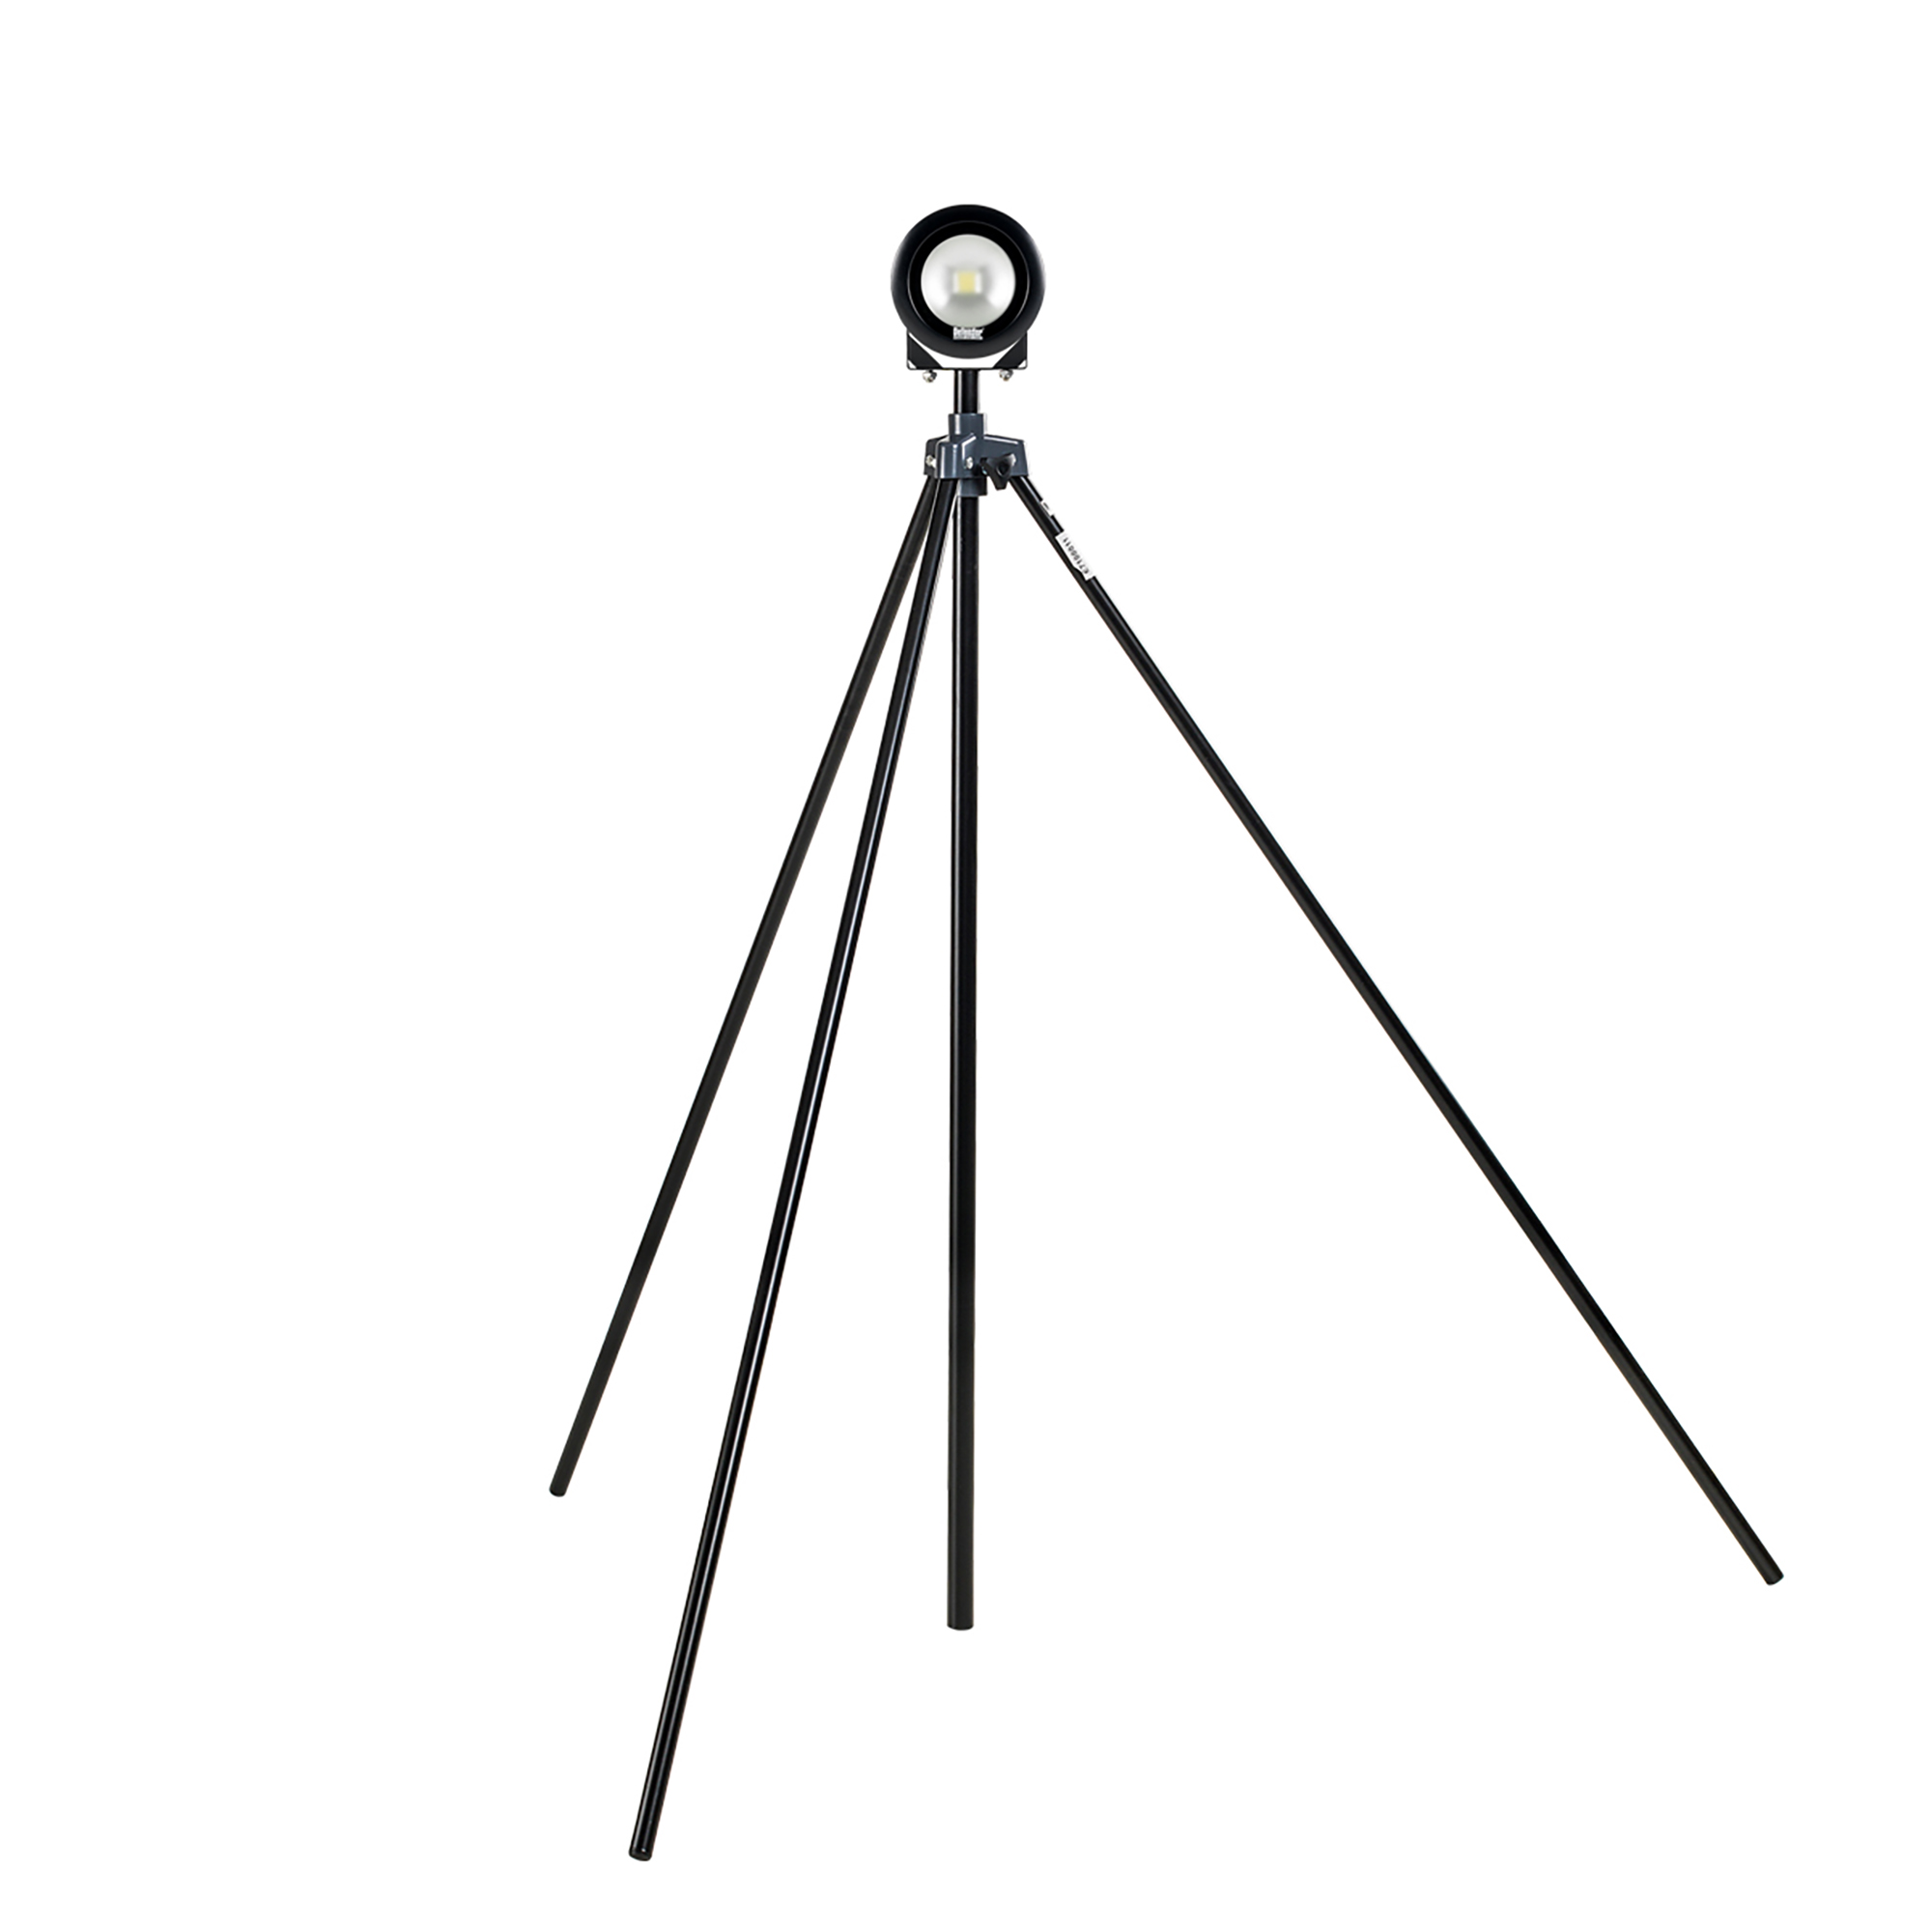 Defender round DF1200 LED light head in black casing mounted on black swing leg tripod